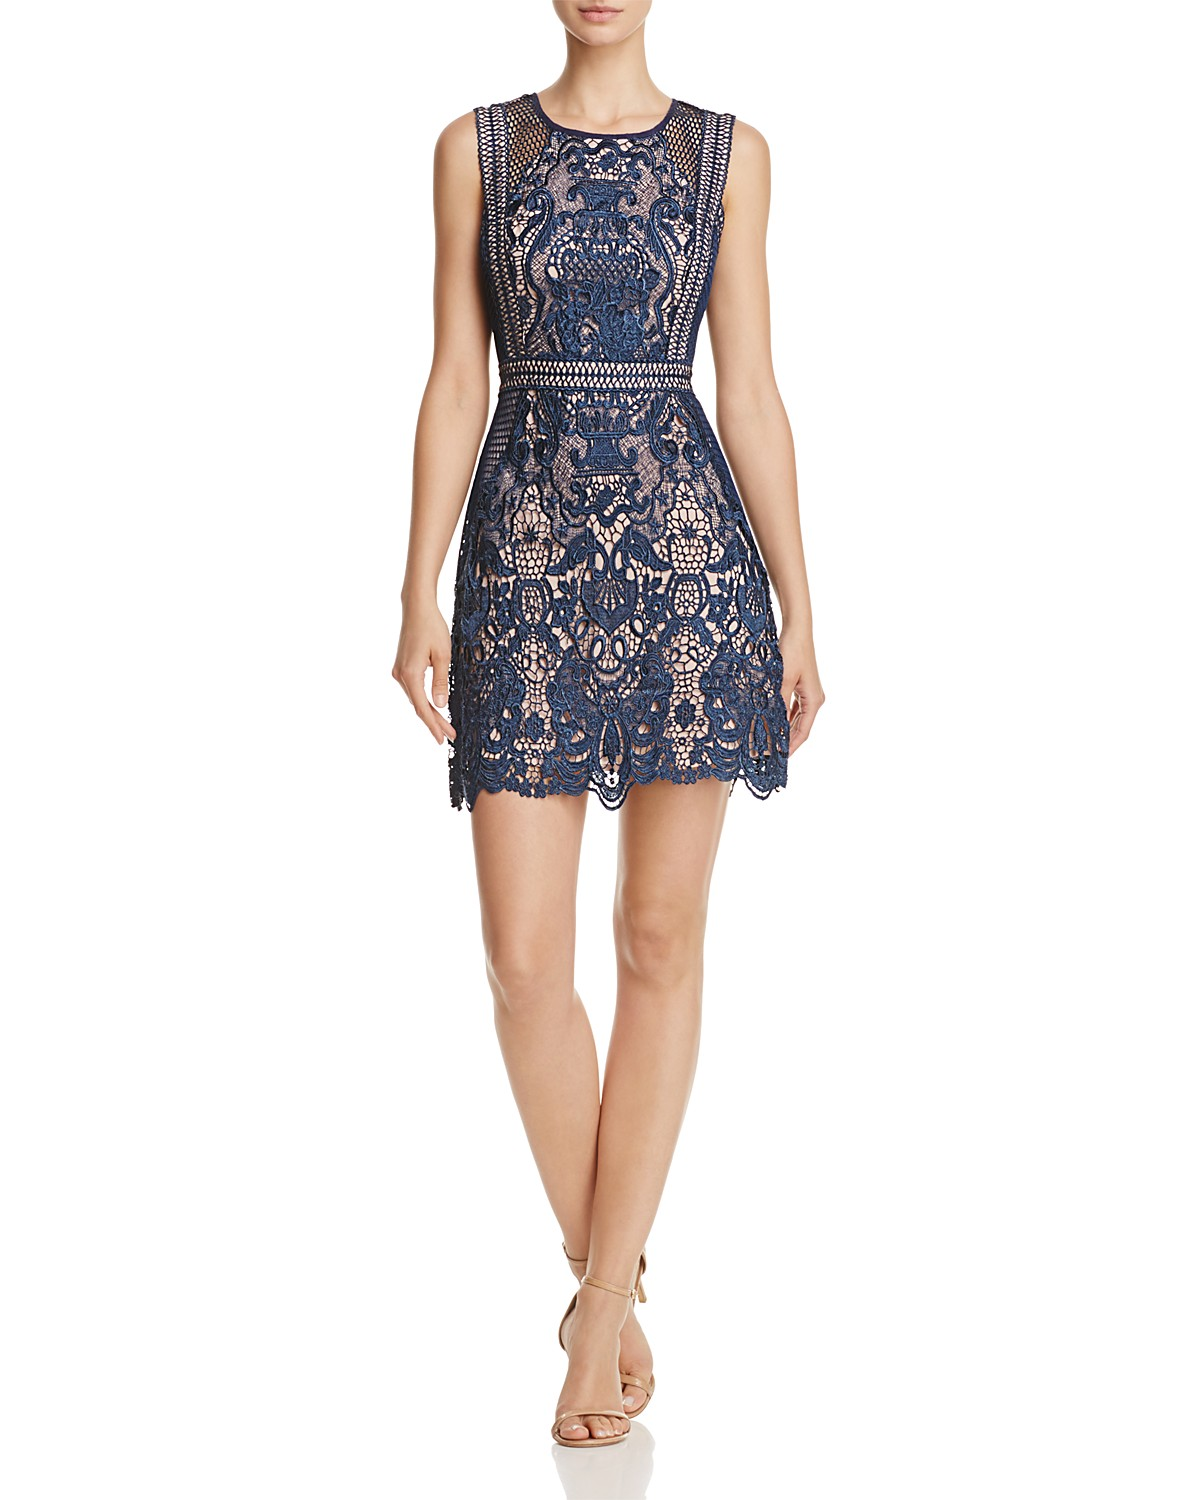 AQUA Fishnet and Lace Dress - 100% Exclusive | Bloomingdale\'s